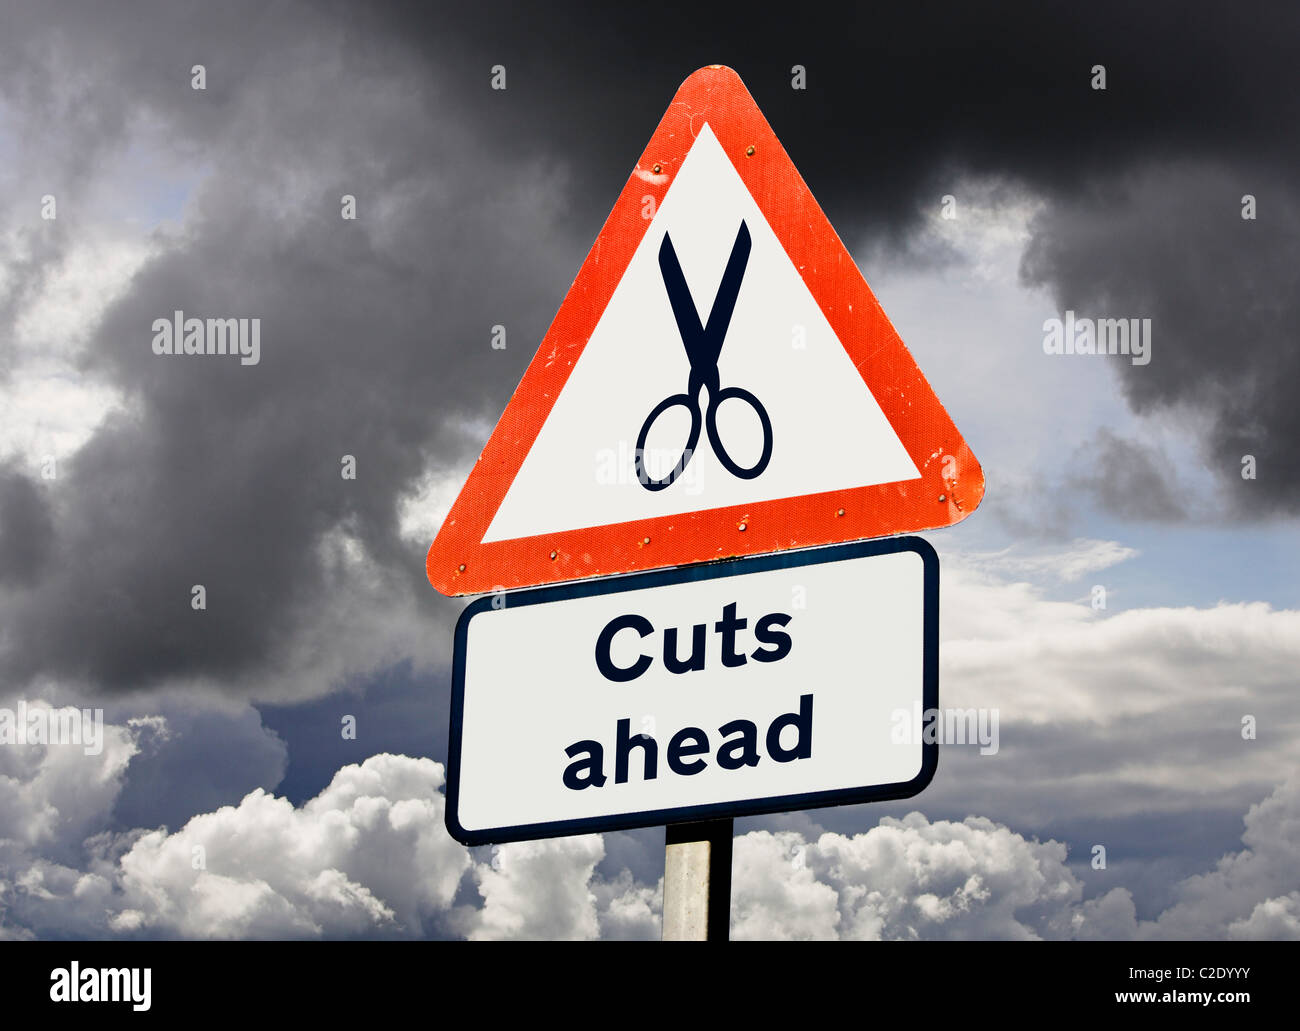 Cuts ahead concept UK against a stormy sky - Stock Image